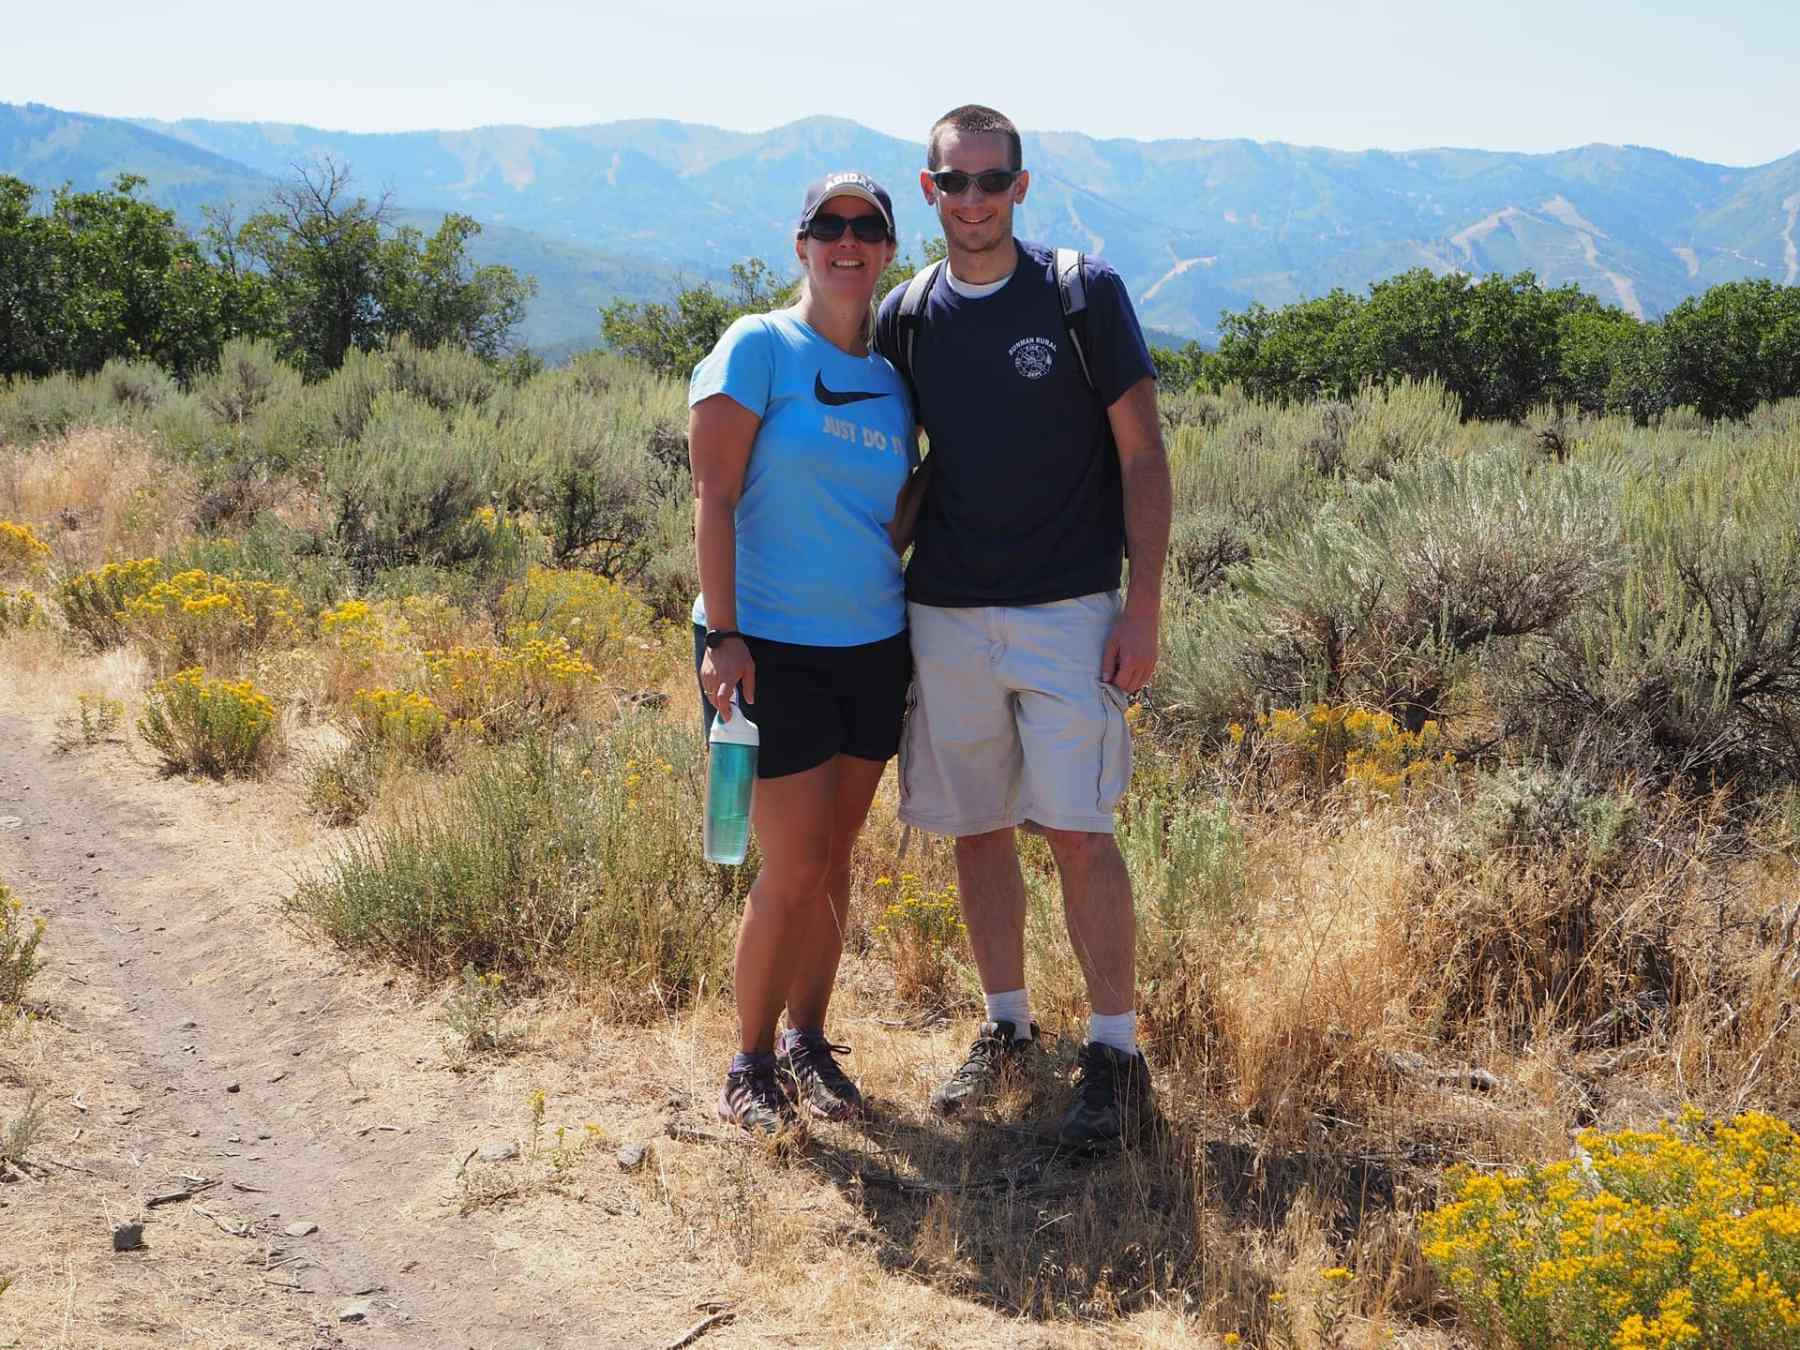 One of our very first hikes! August 2016